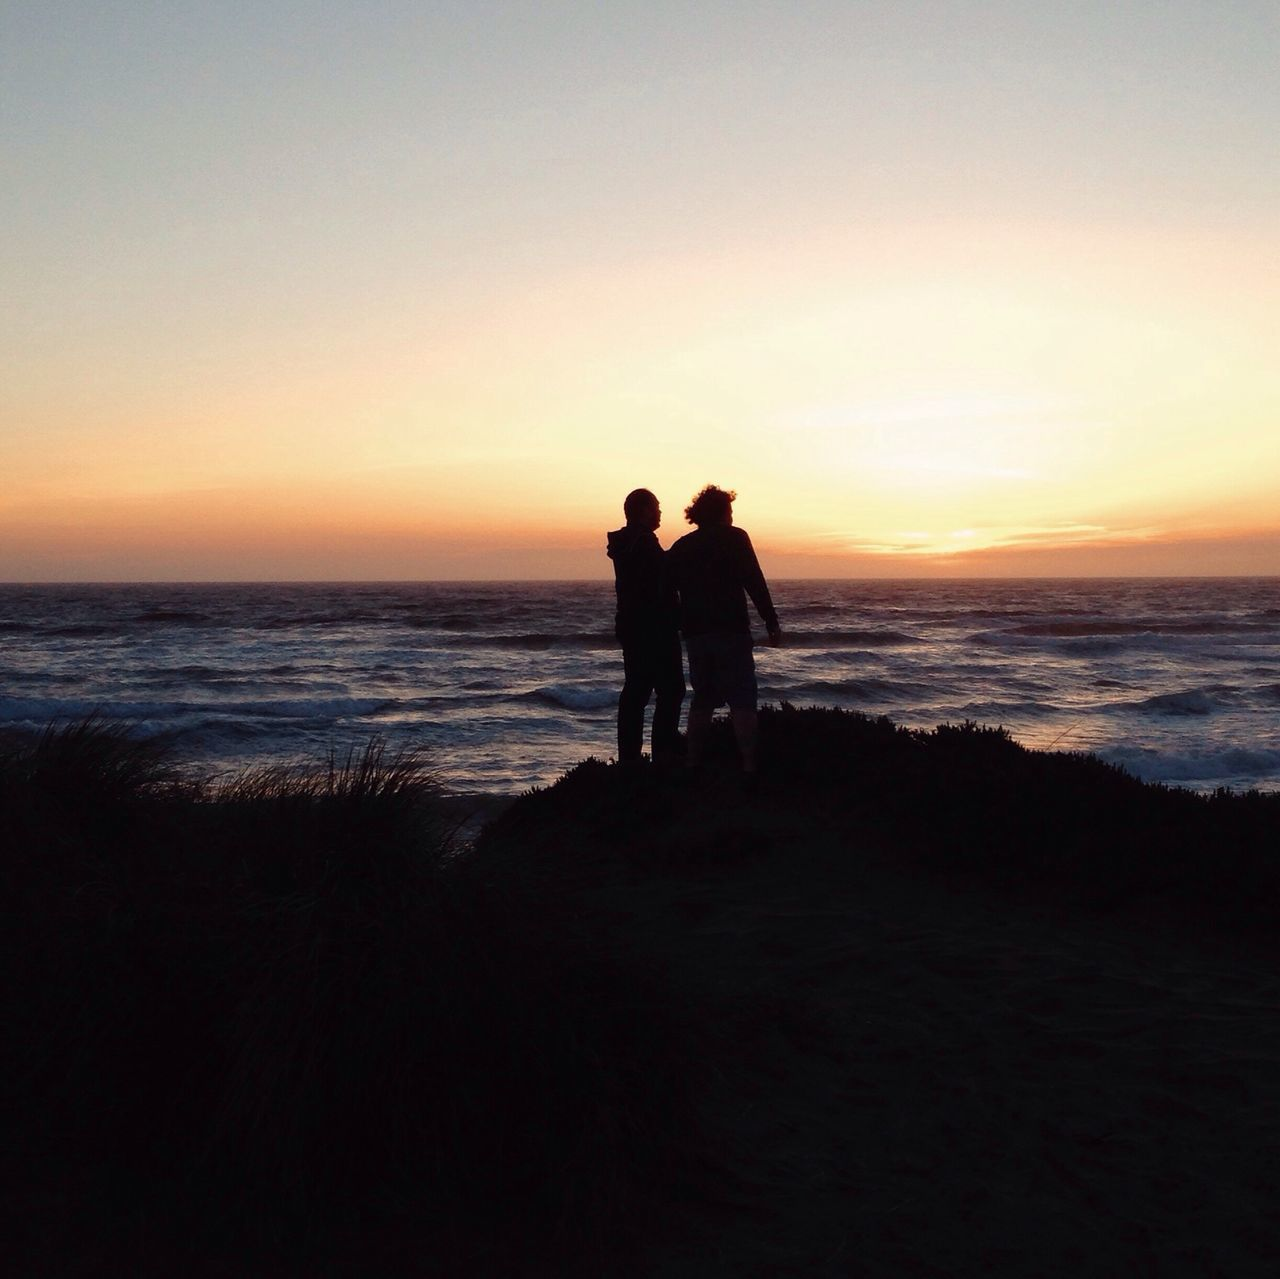 sunset, sea, beach, silhouette, nature, togetherness, beauty in nature, horizon over water, water, two people, shore, sky, scenics, love, tranquil scene, leisure activity, men, real people, friendship, tranquility, standing, outdoors, vacations, full length, lifestyles, sand, bonding, women, wave, day, adult, people